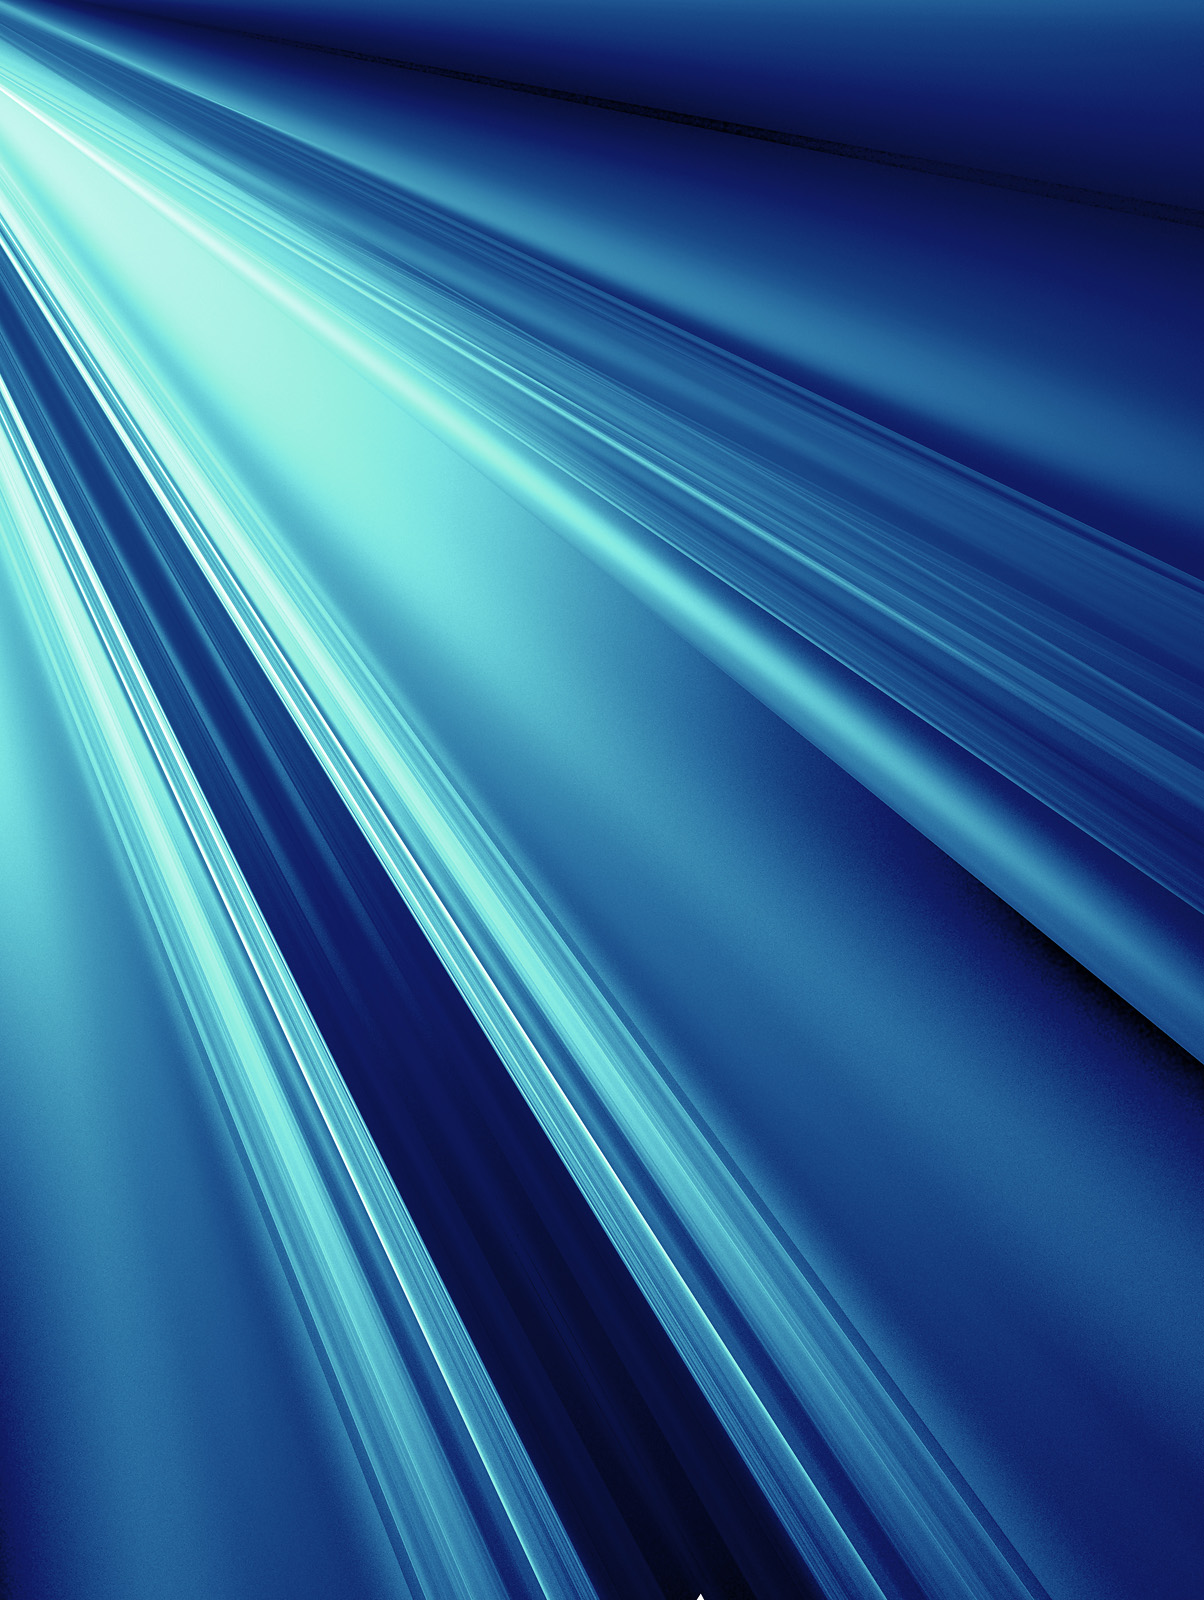 Blue background material 25877